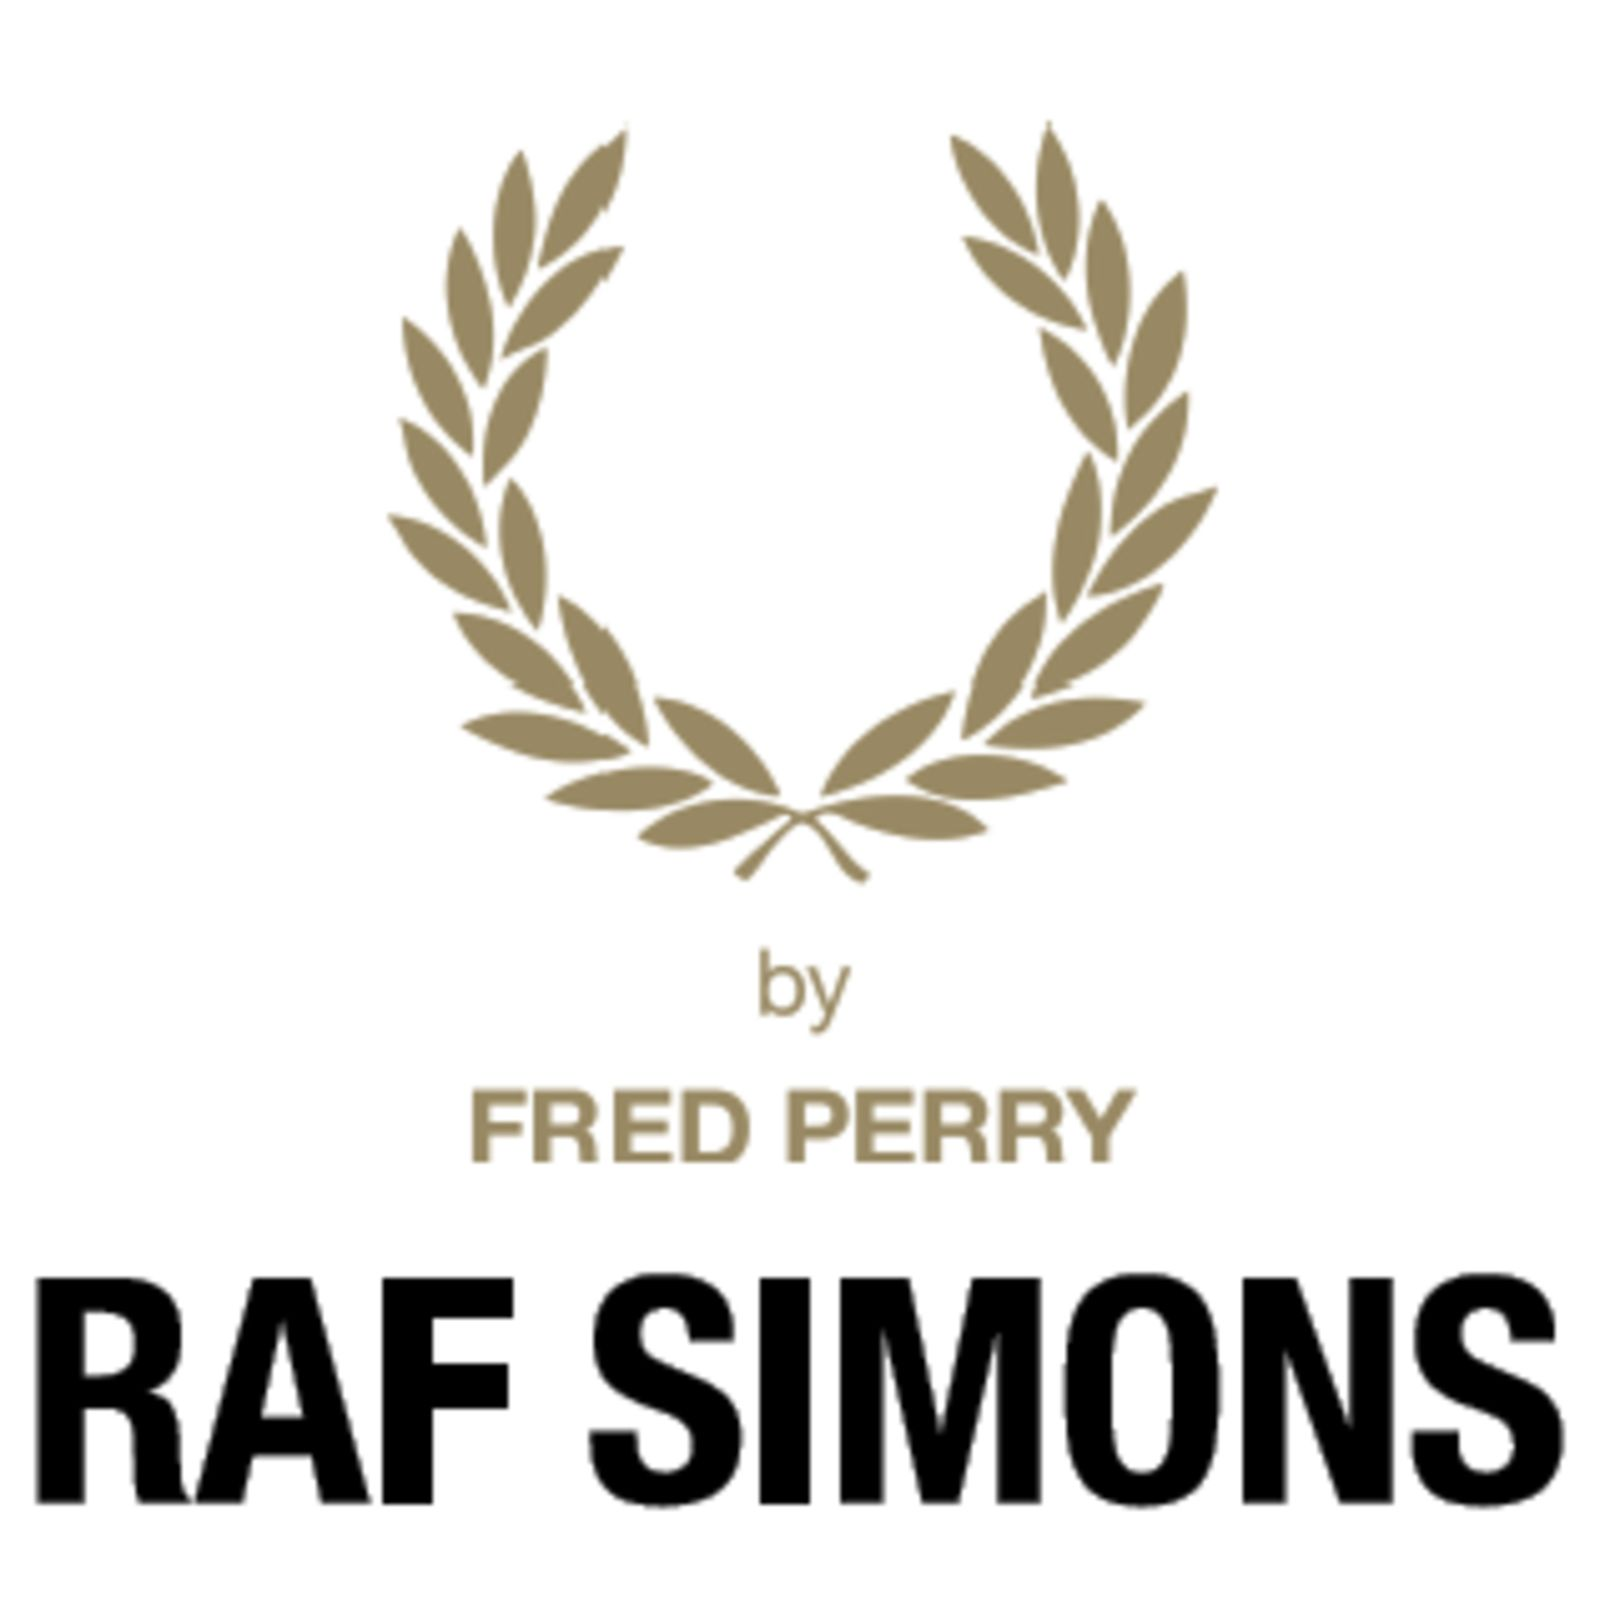 FRED PERRY Laurel Wreath | RAF SIMONS (Изображение 1)